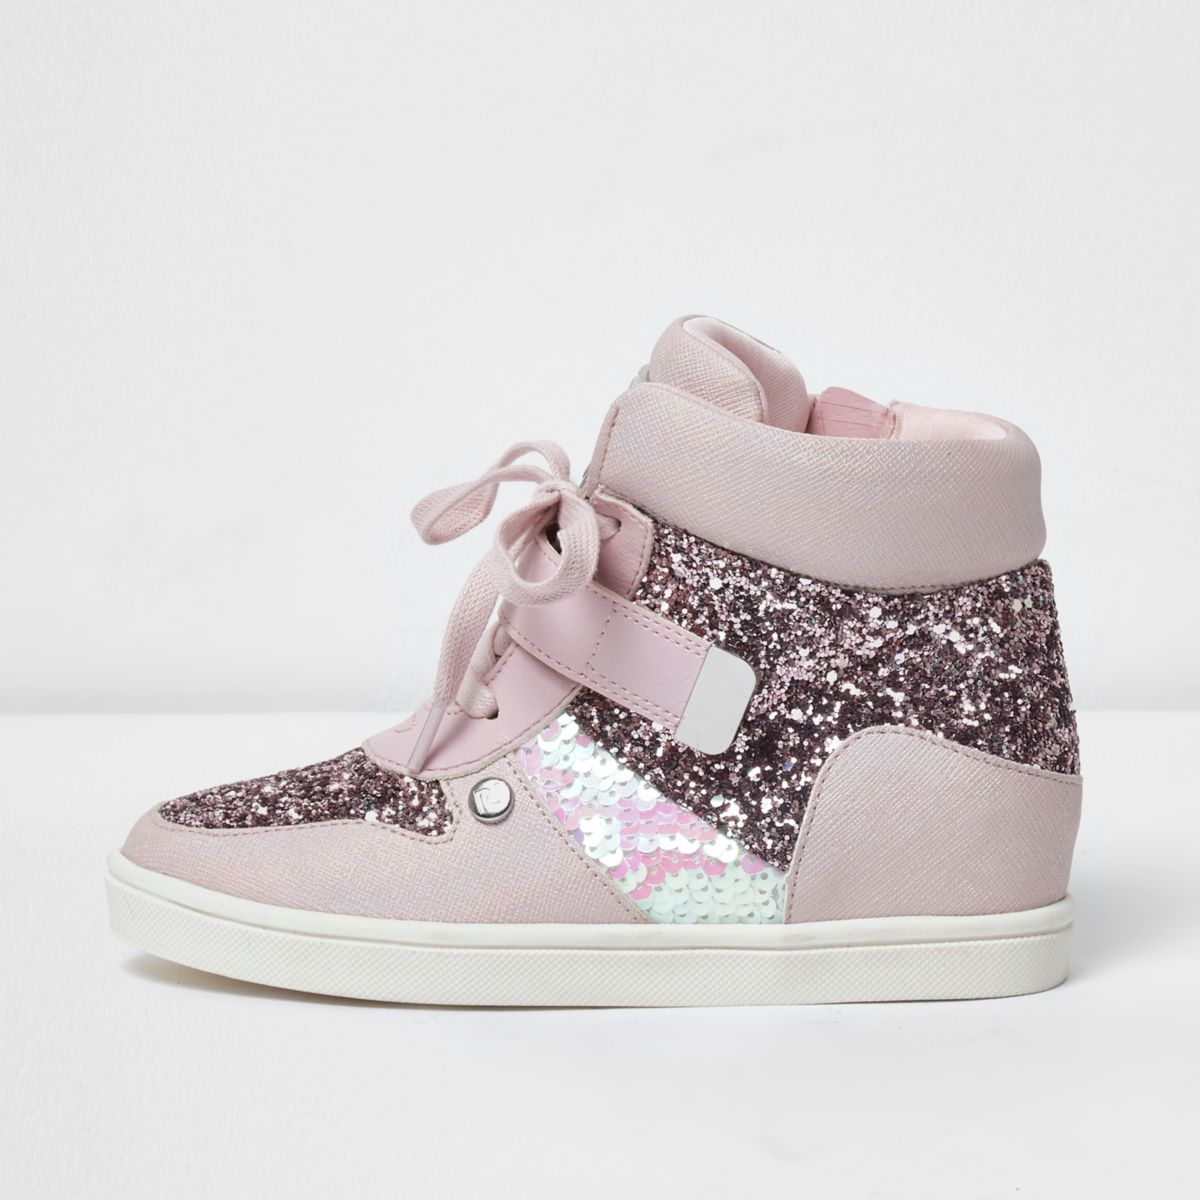 Girls pink glitter hi top lace-up sneakers